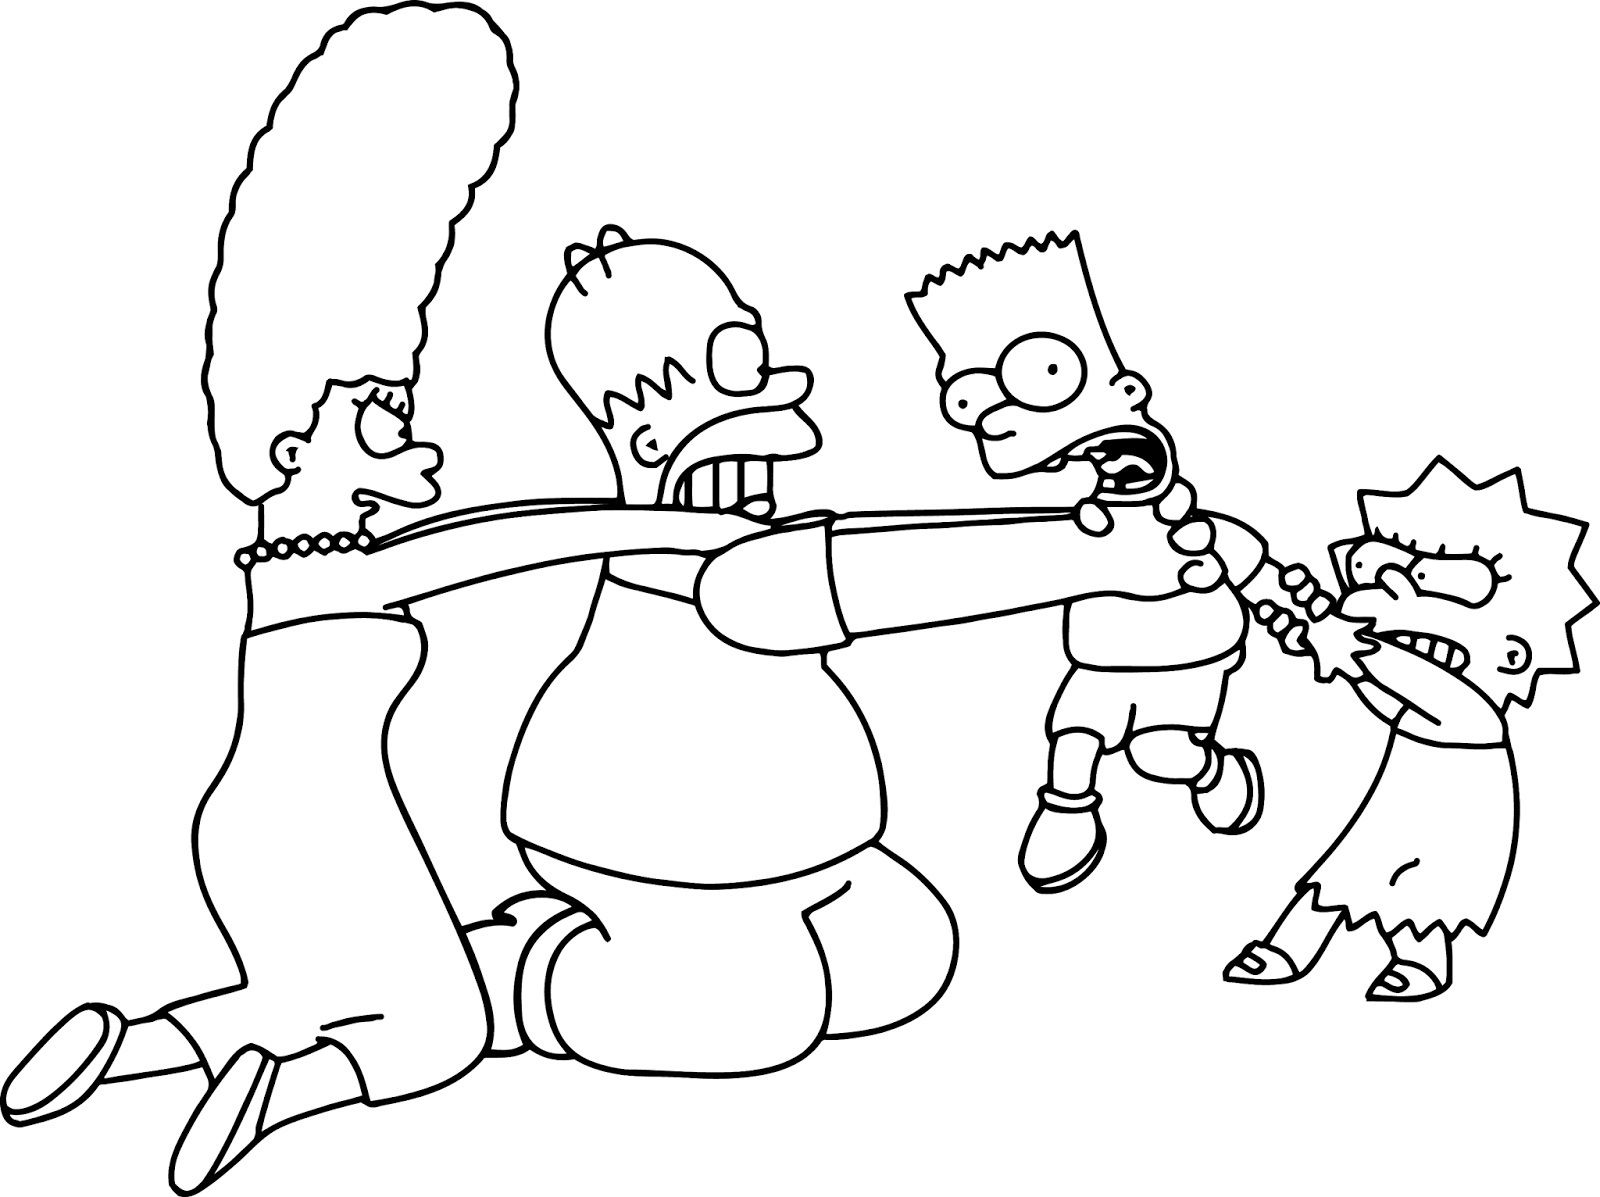 Printable Simpsons Coloring Pages Coloring Pages Cool Coloring Pages Coloring Books